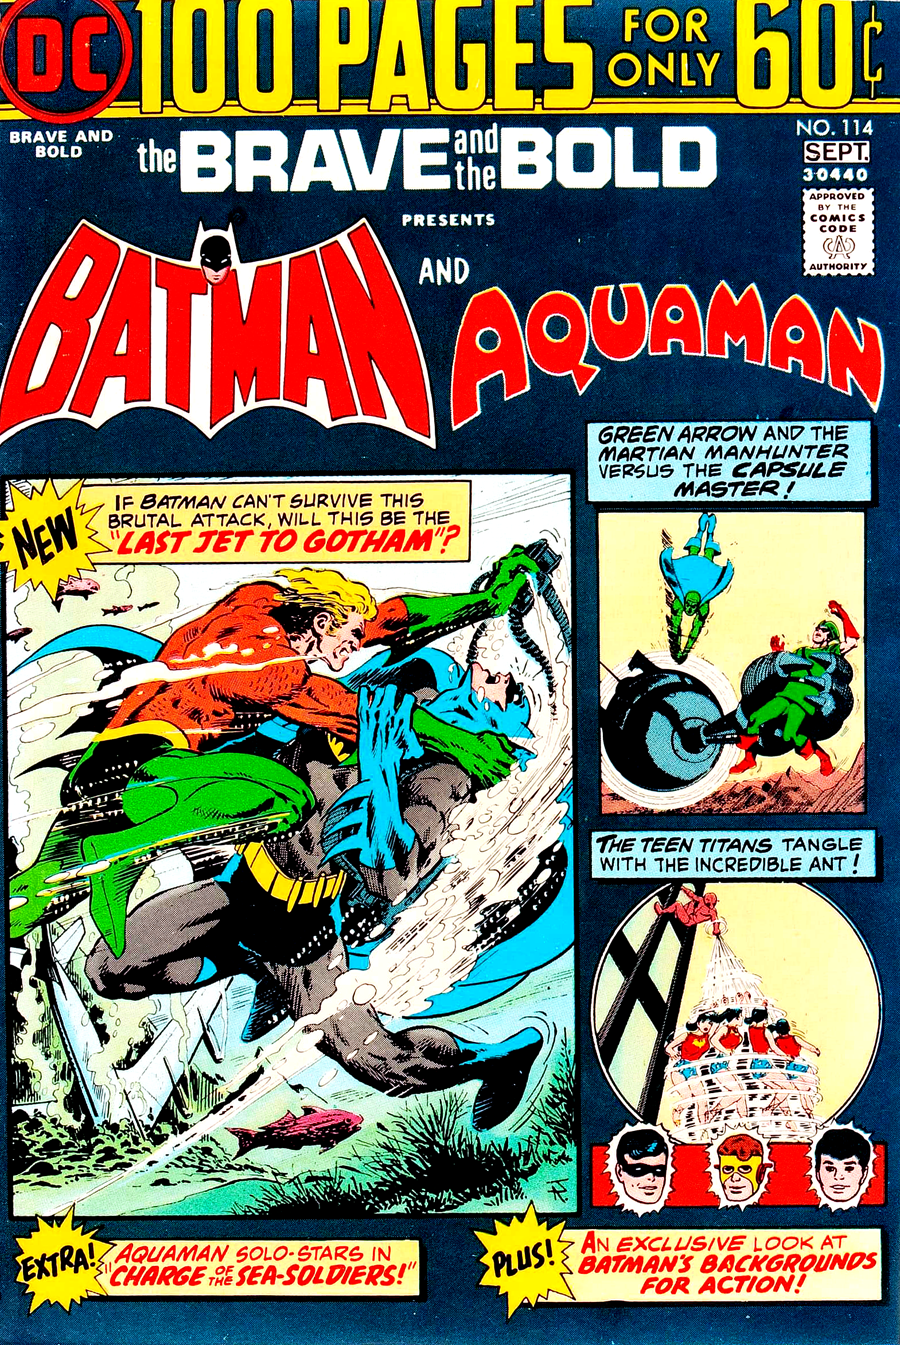 Brave and the Bold #114 cover by Jim Aparo